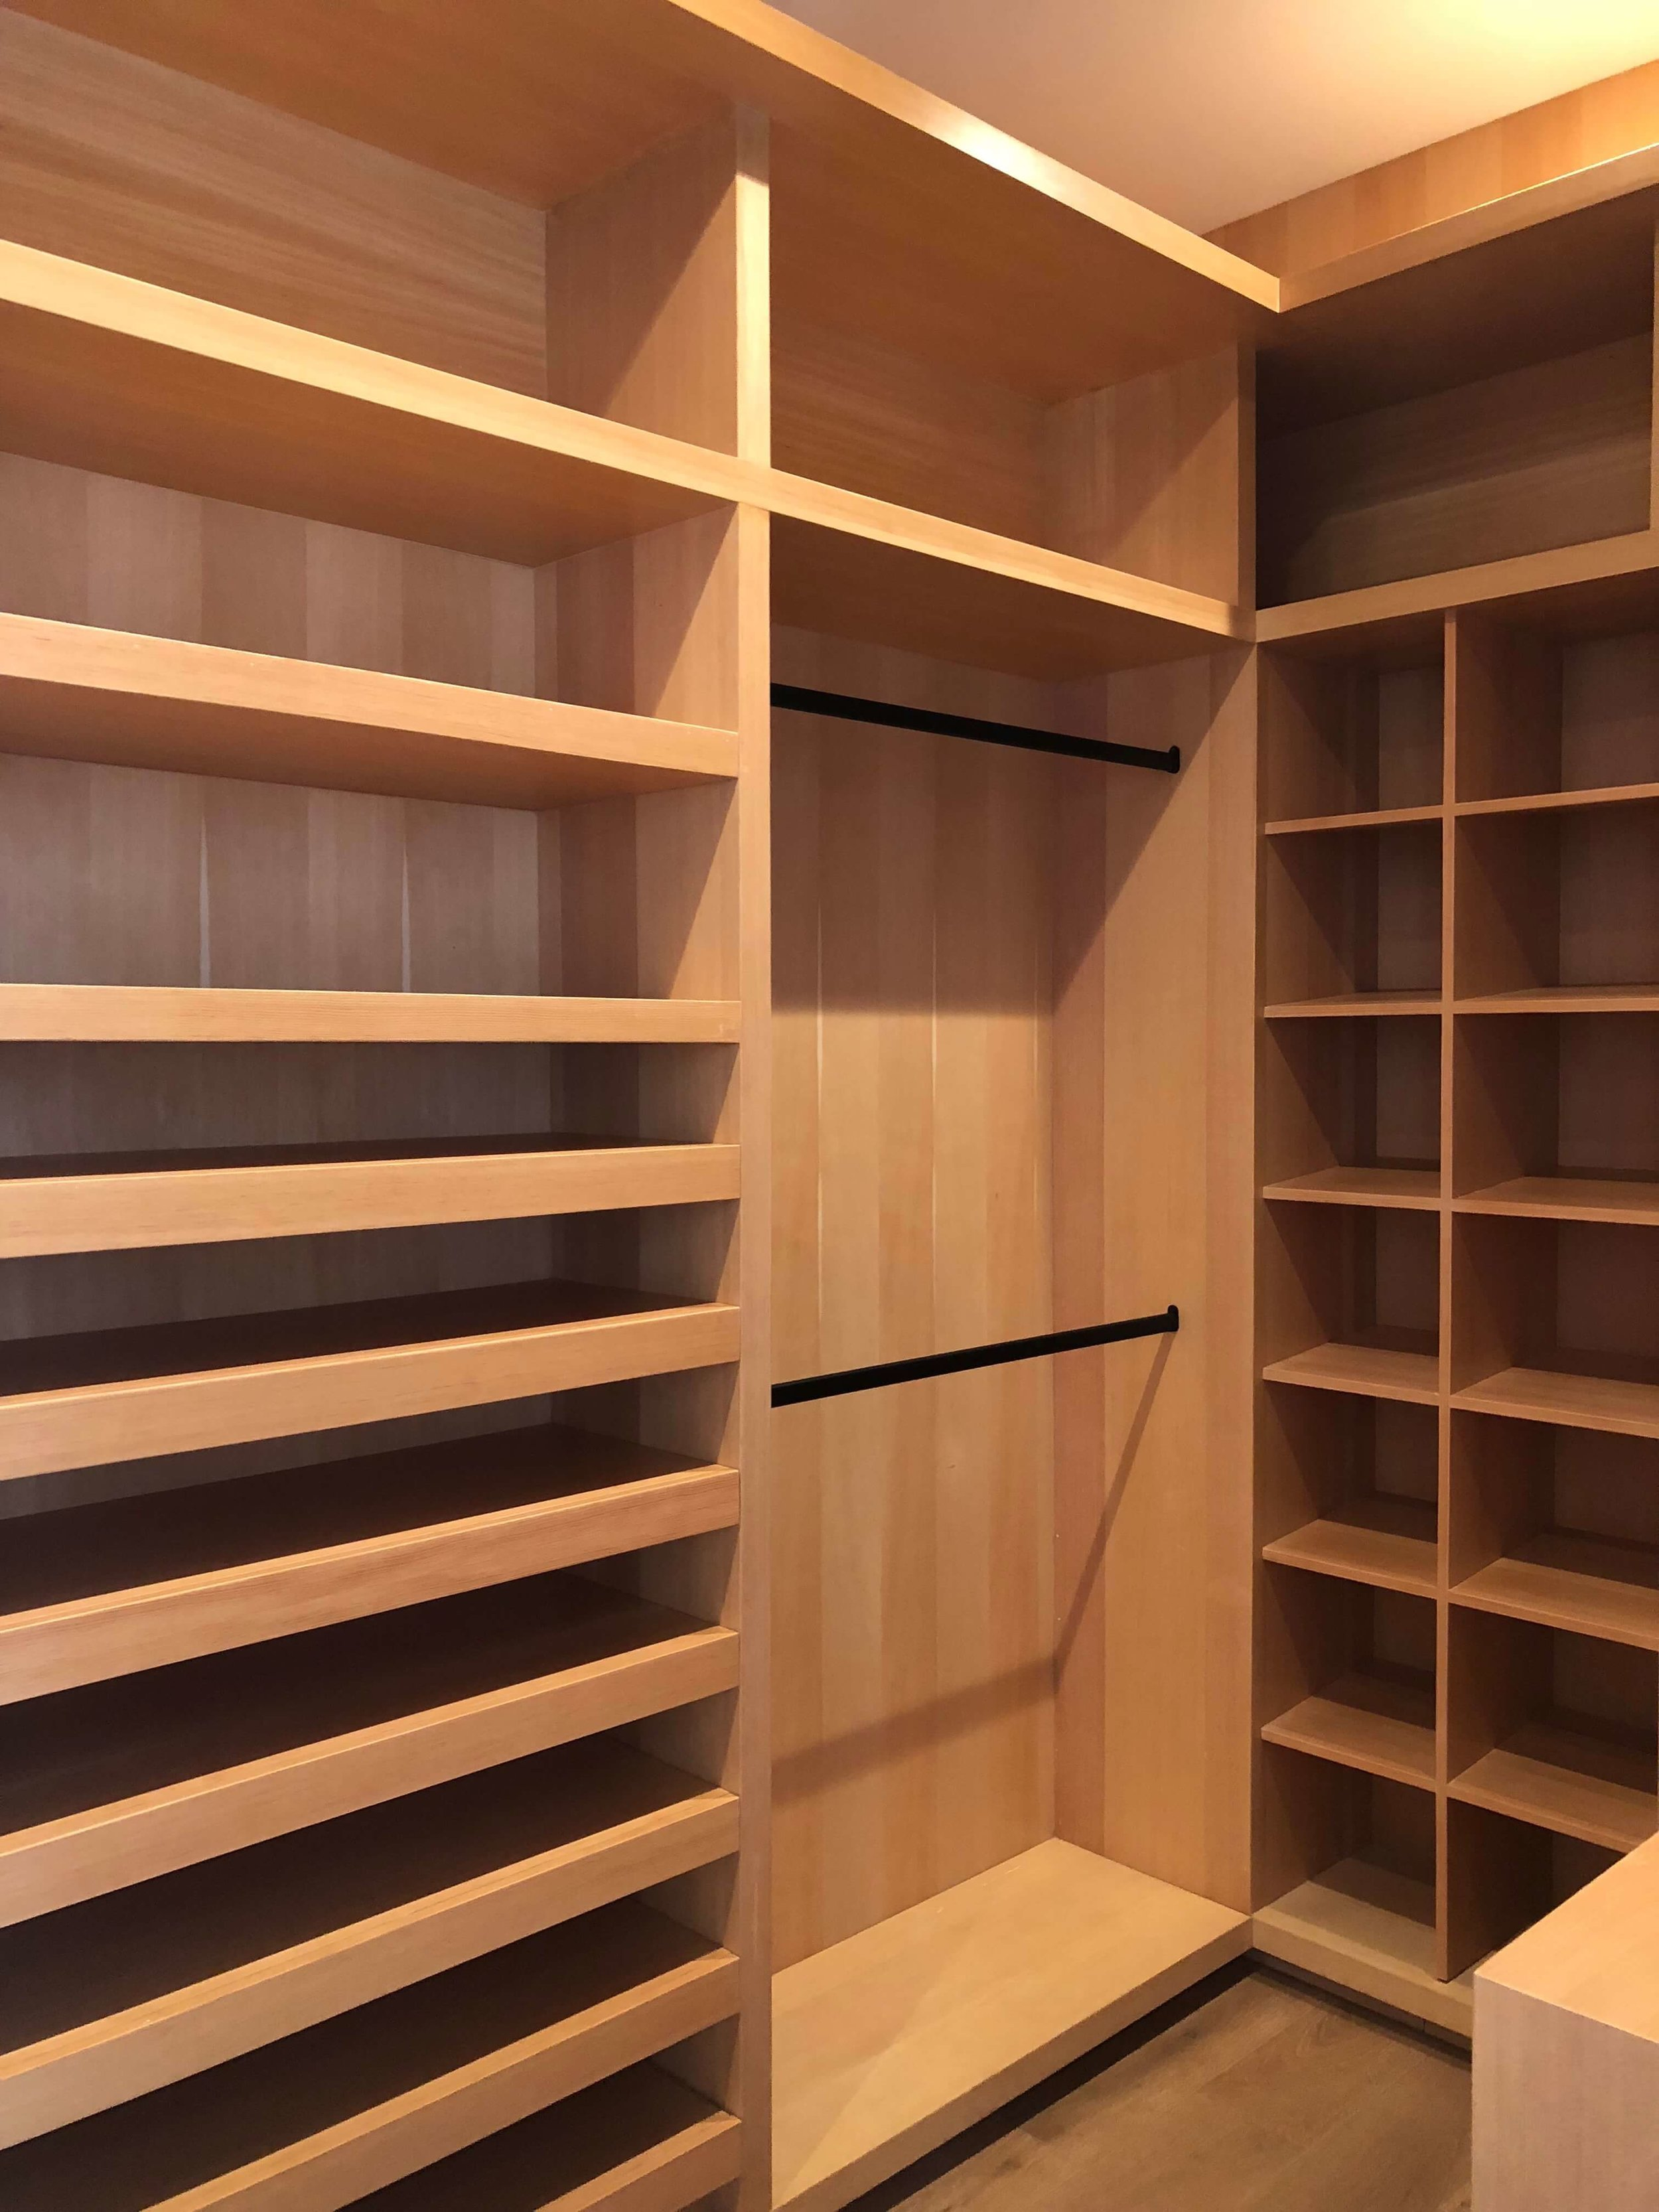 Master closet in natural oak in contemporary home - Dwell on Design's Fall Home Tour, Designer: Vitus Matare #closet #cabinetry #closetdesign